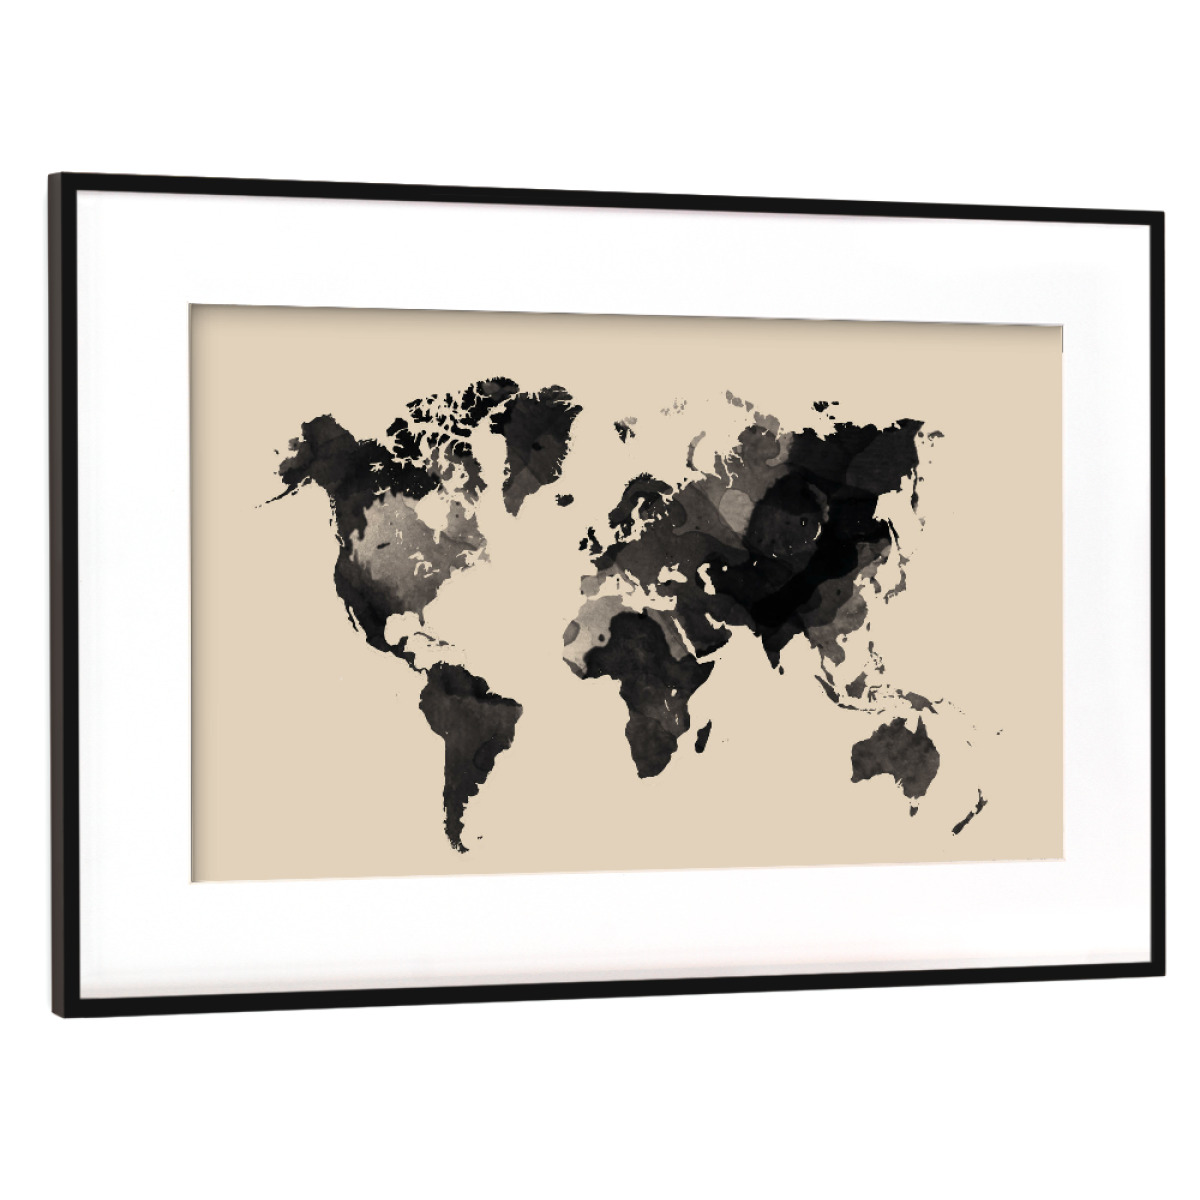 Purchase the World Map Beige as a Frame at artboxONE